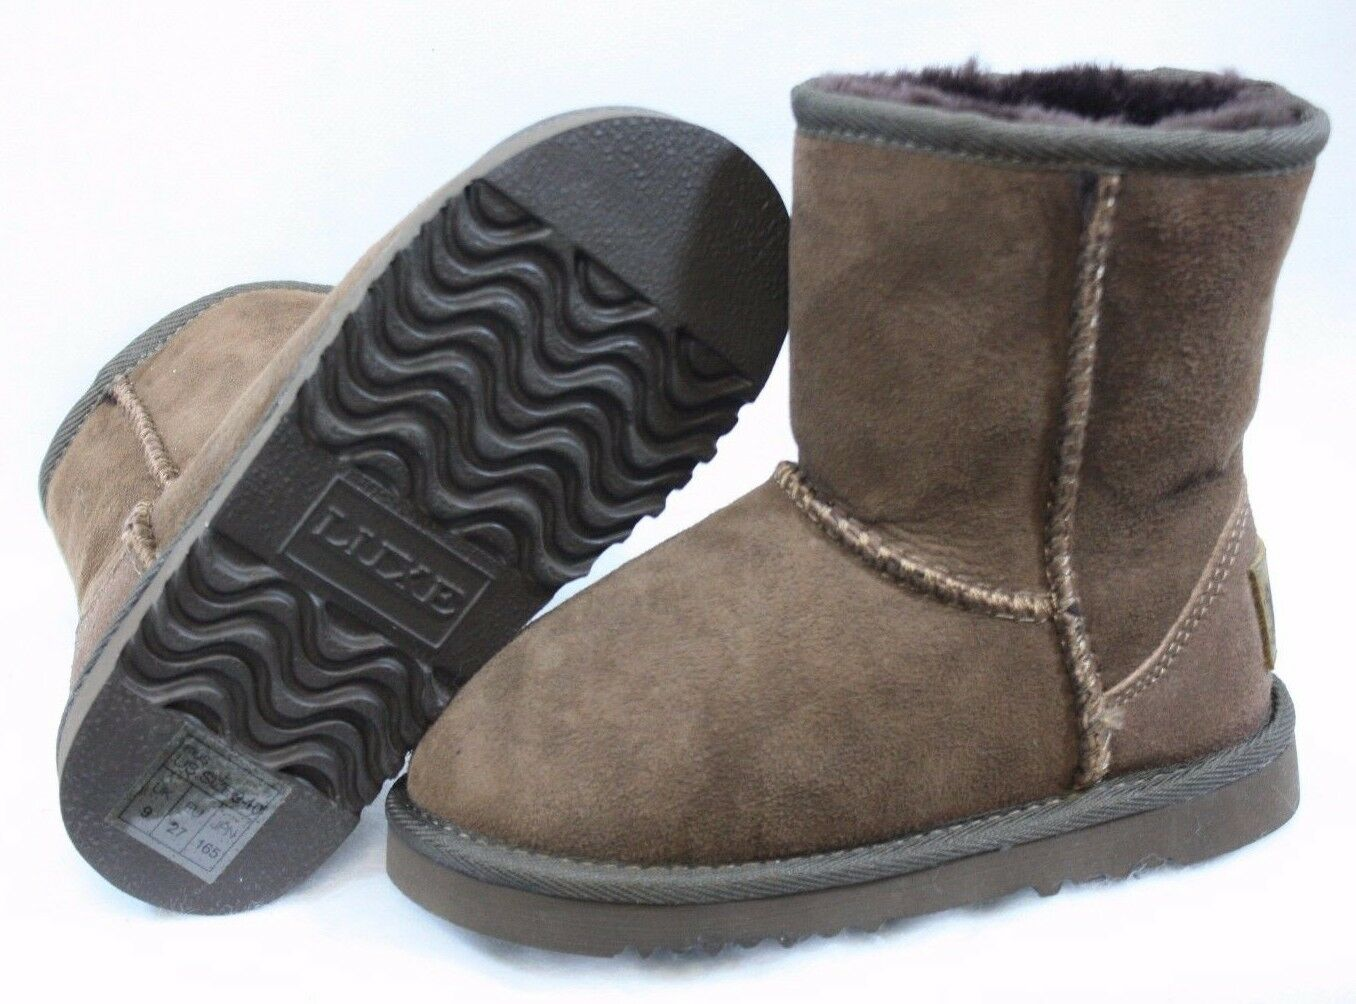 NEW Infant Toddler Girls Kids Size 9 / 10 AUSTRALIA LUXE Chocolate Boots Shoes